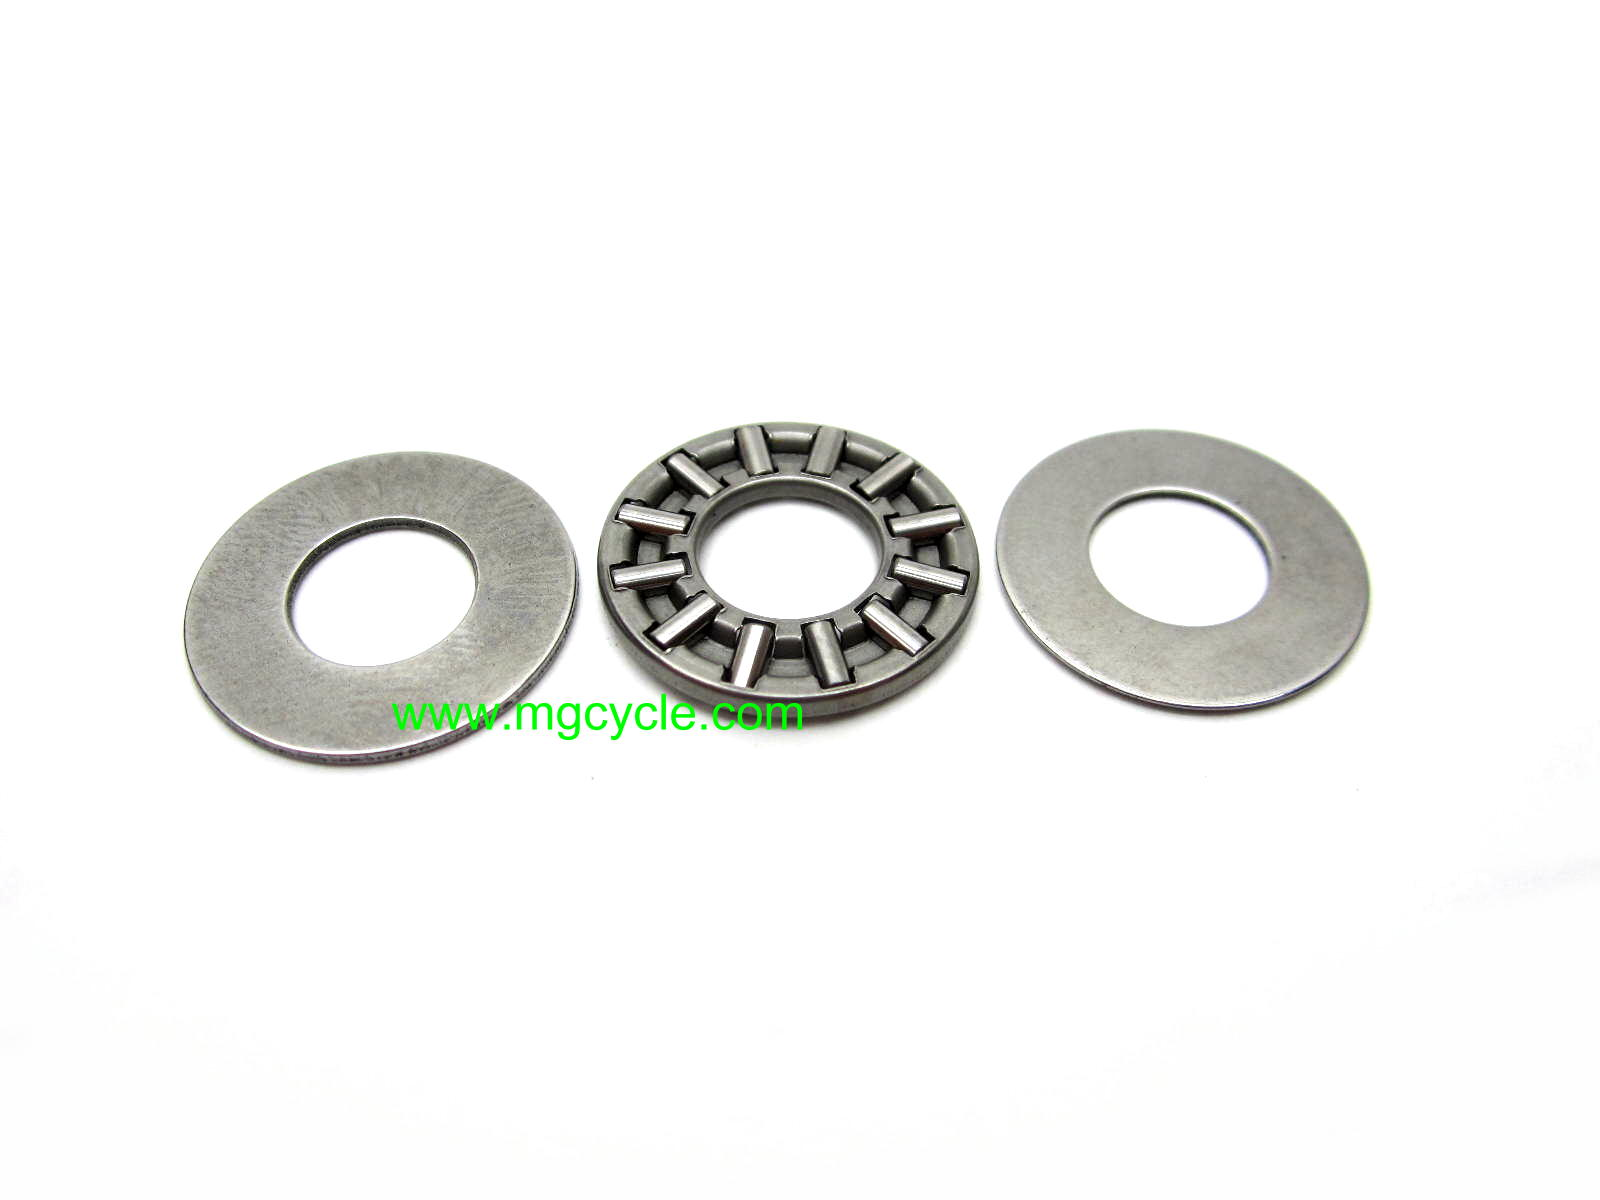 Clutch throwout bearing most 4, 5 and 6 speed trannys GU12087001